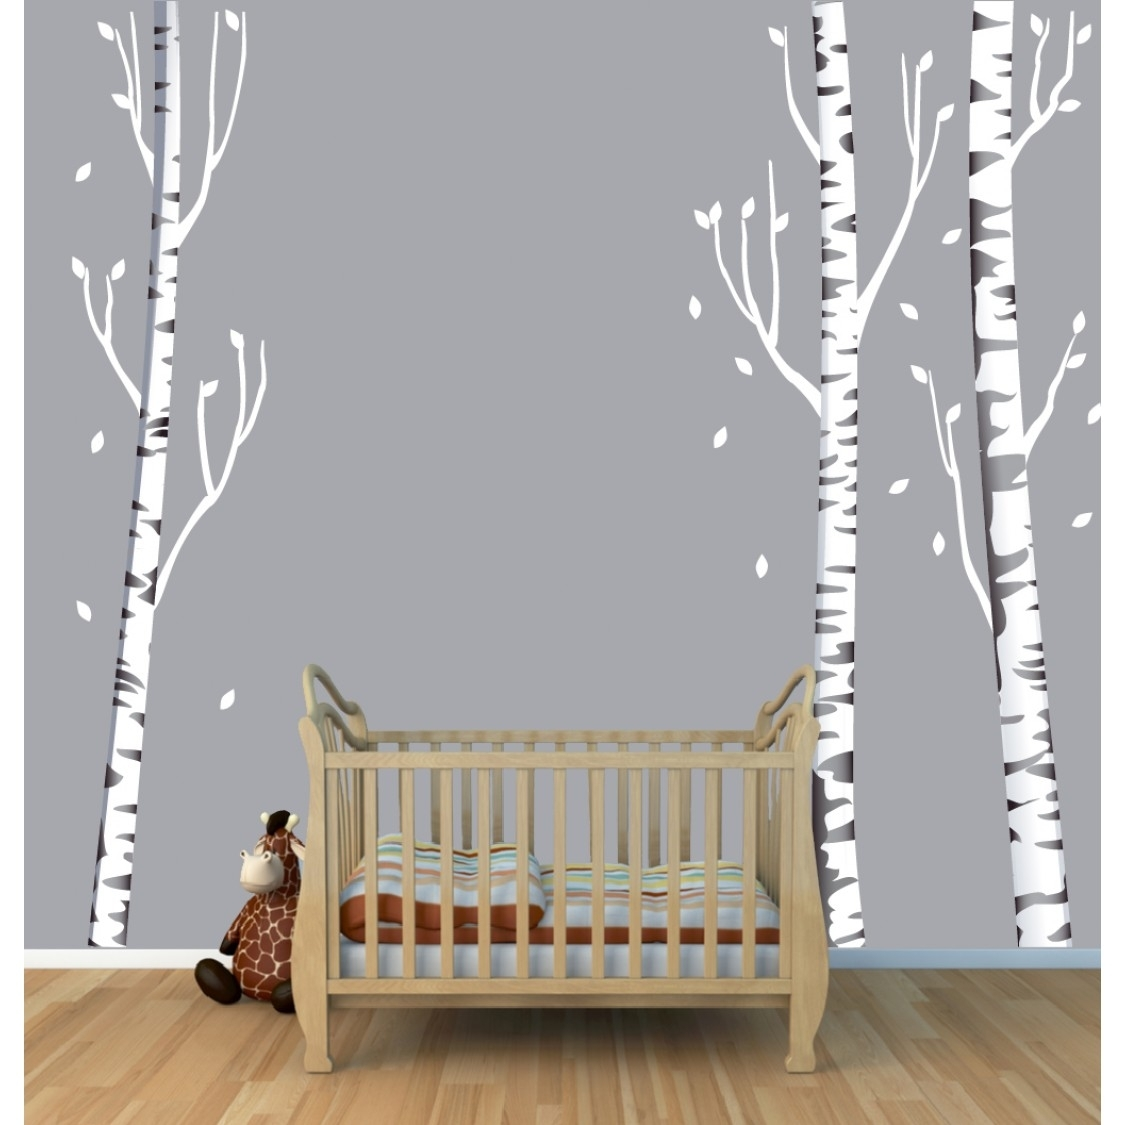 Tree Wall Art With Birch Tree Wall Decals For Kids Rooms Inside Most Popular Birch Tree Wall Art (View 4 of 20)